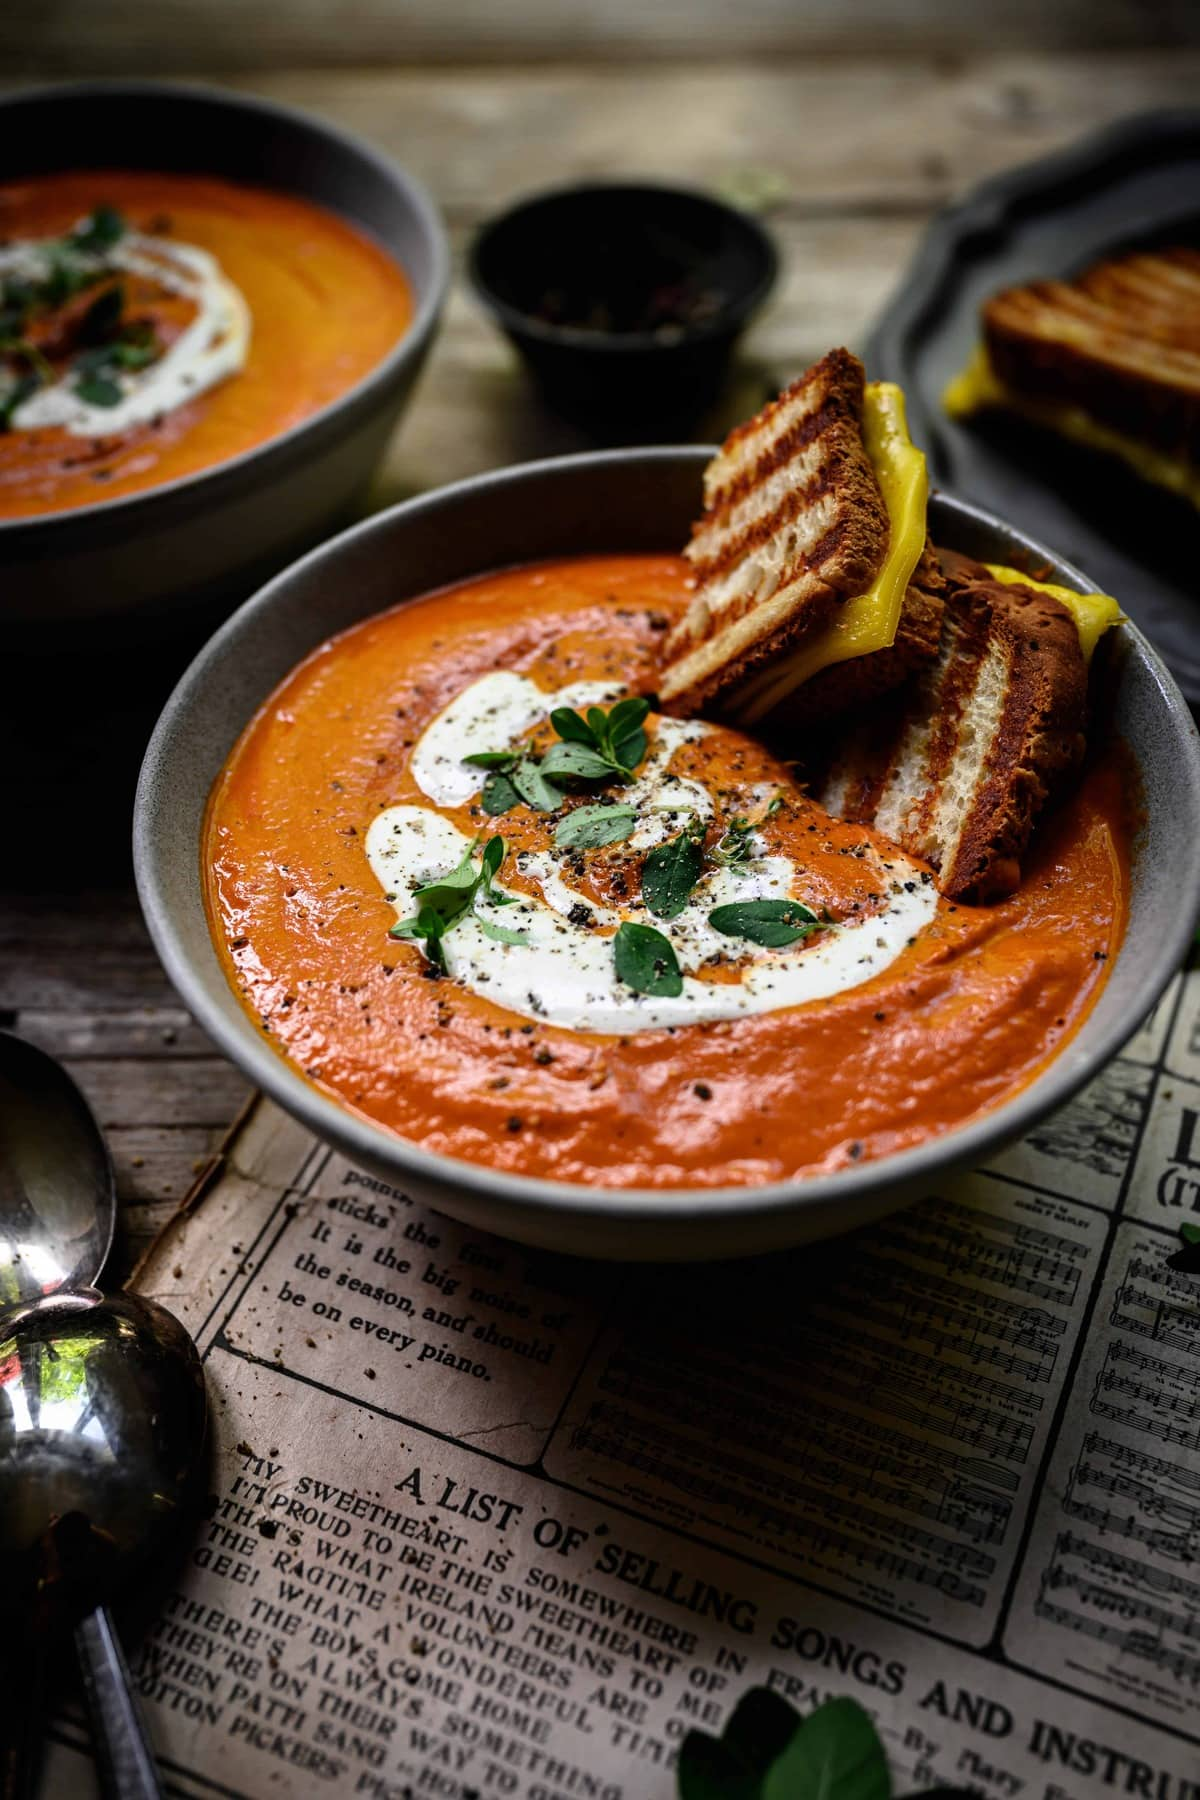 45 degree angle of roasted tomato soup with vegan grilled cheese